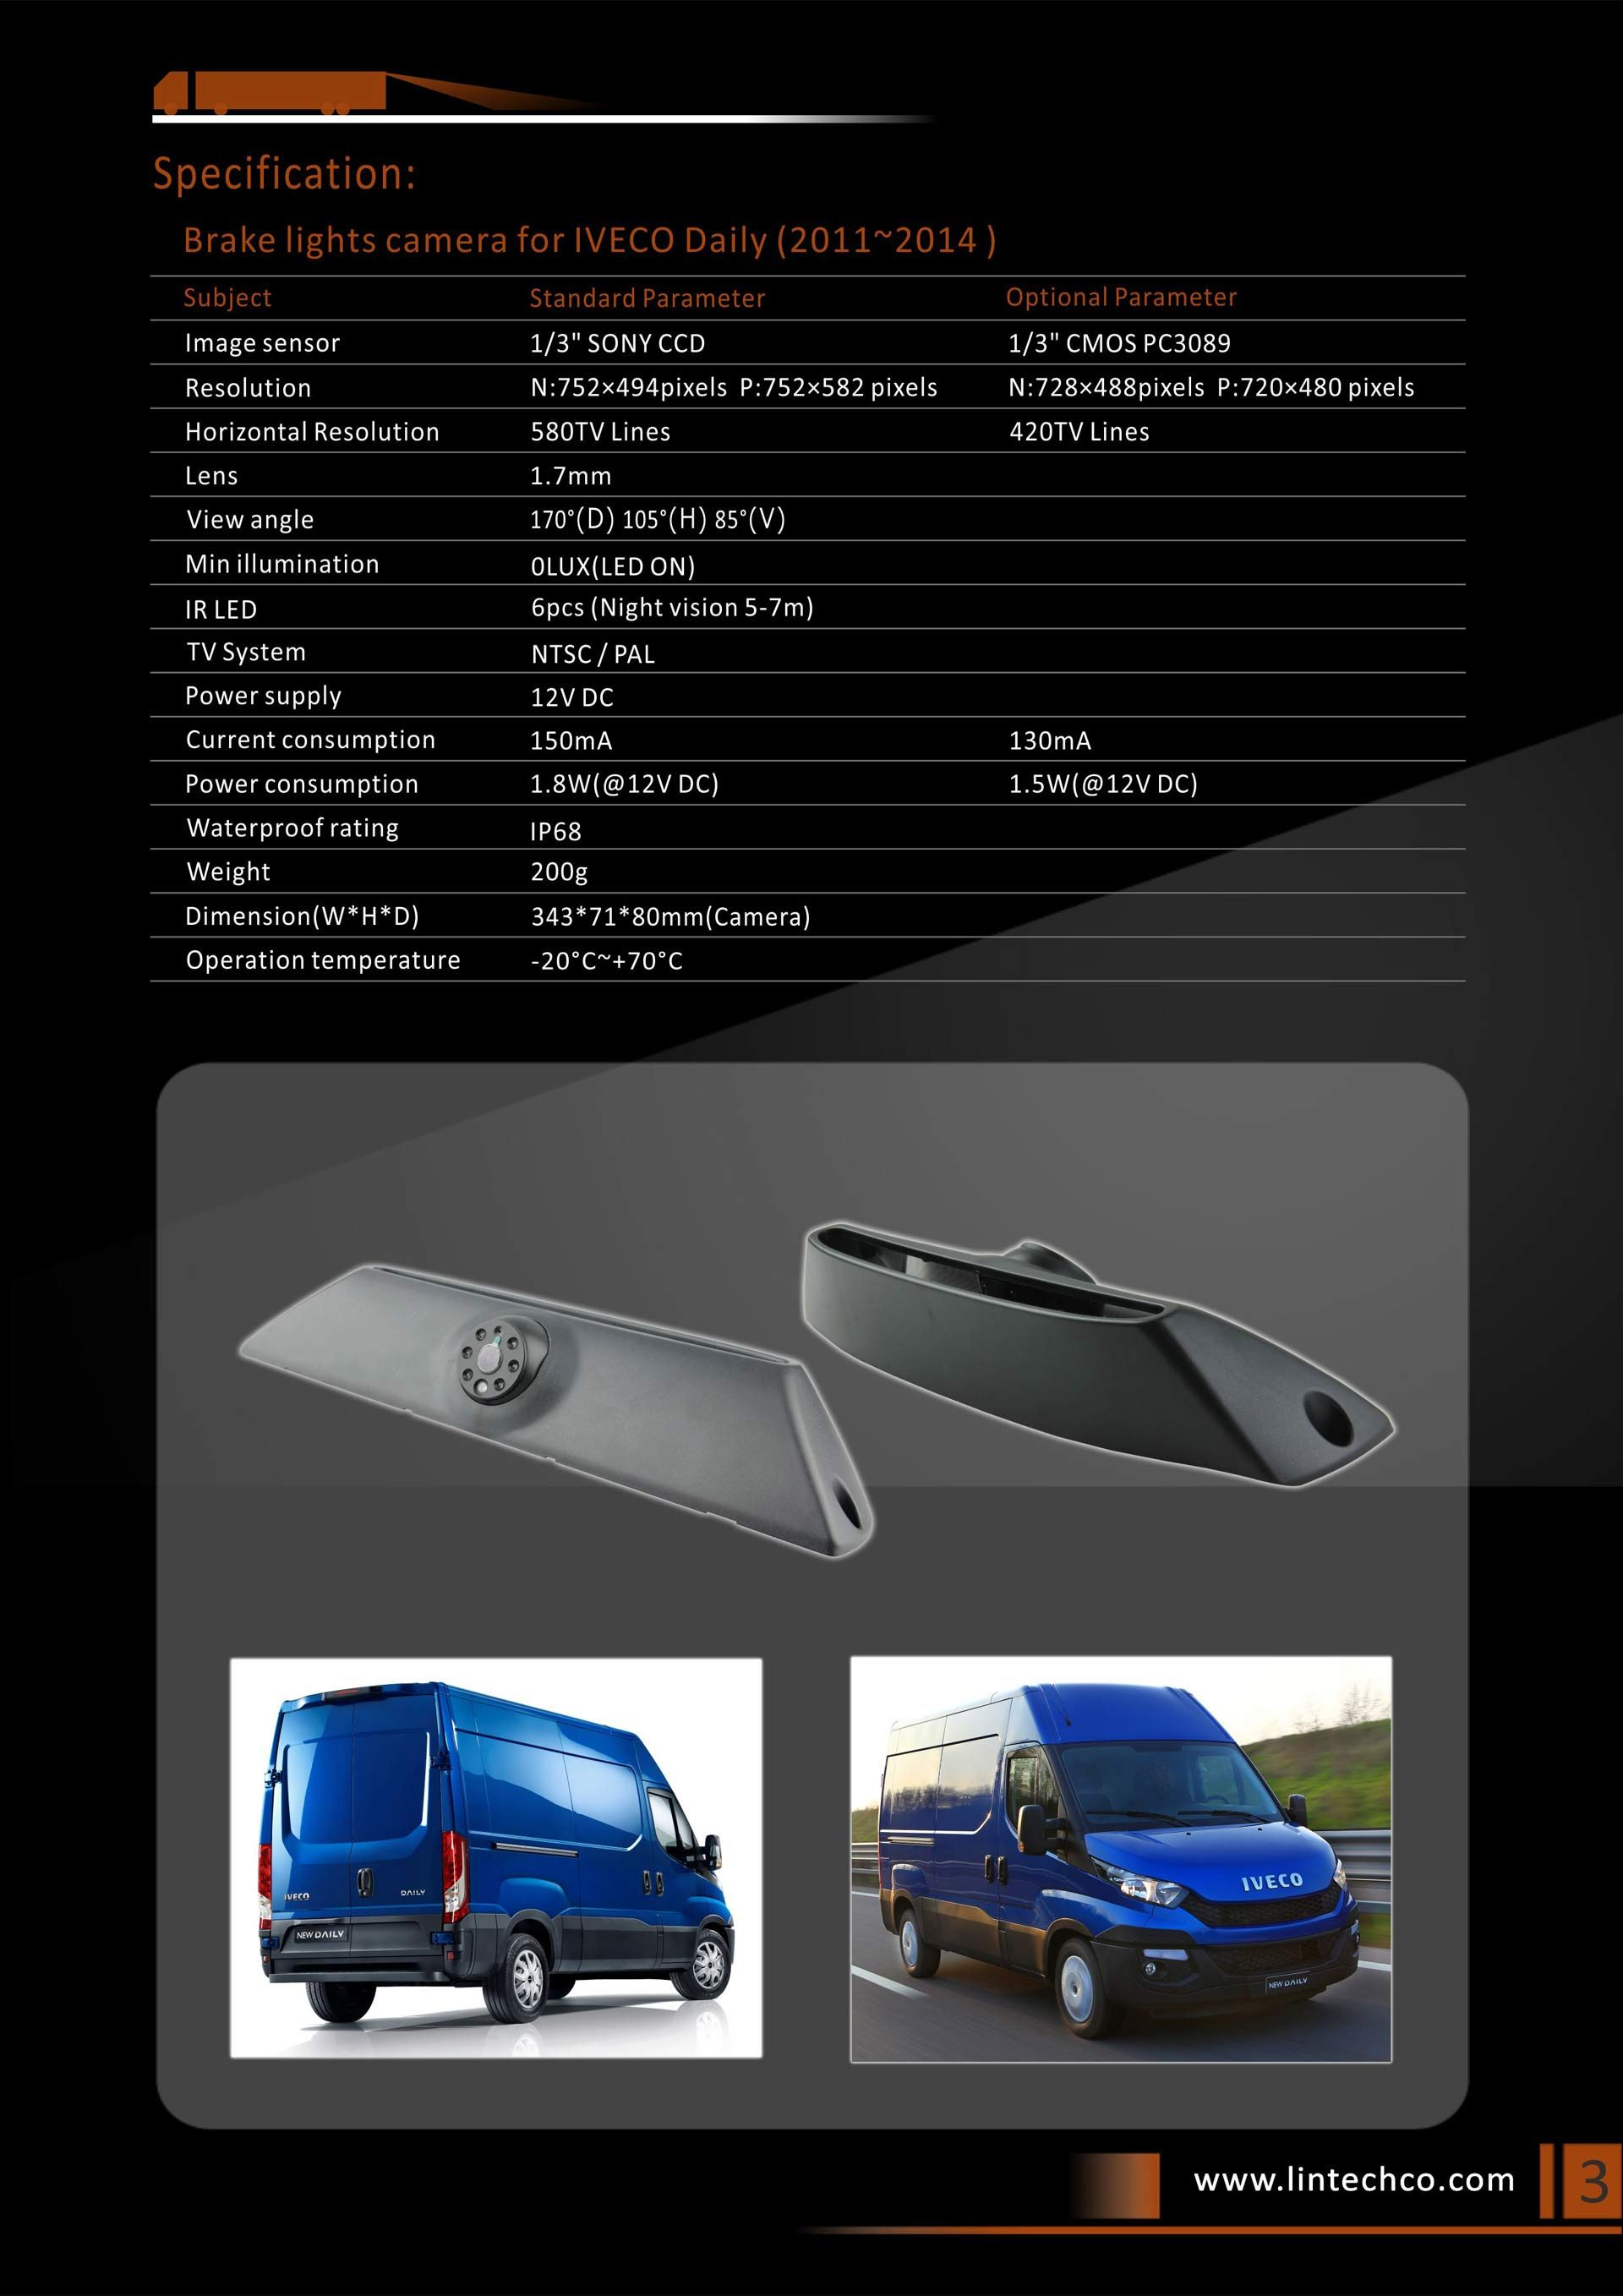 3.Brake Lights Camera For IVECO Daily